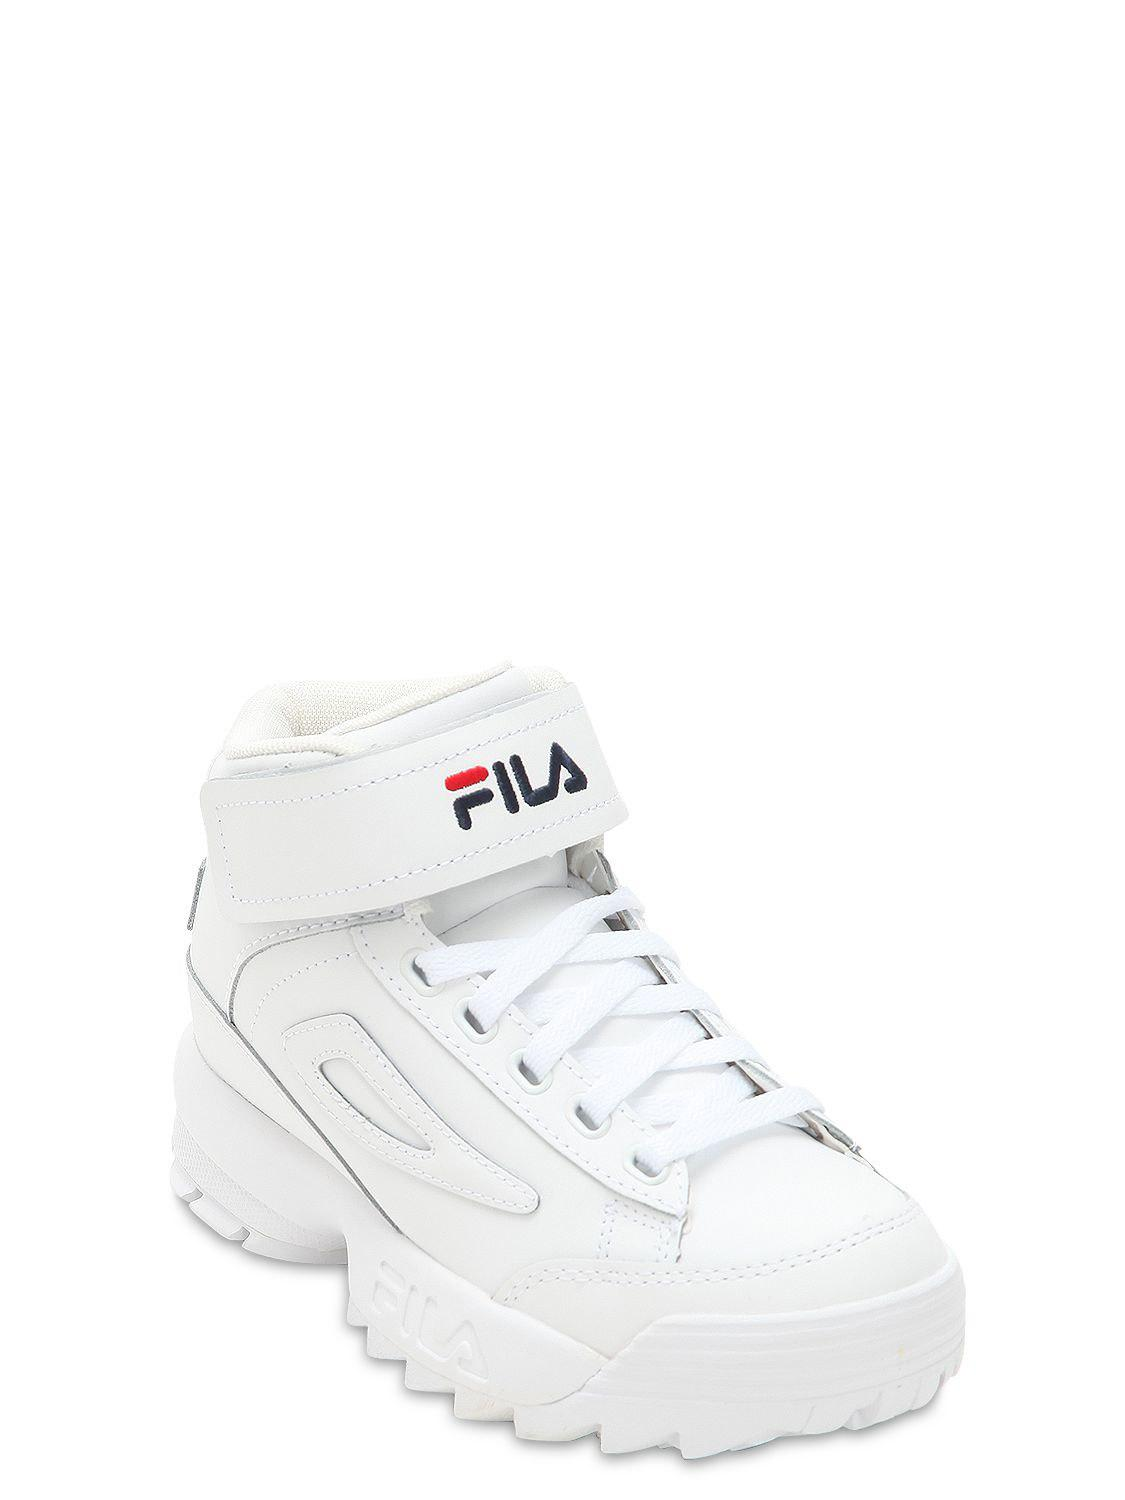 ac0471897a77 Lyst - Fila Disruptor Leather Platform Sneakers in White - Save 11%